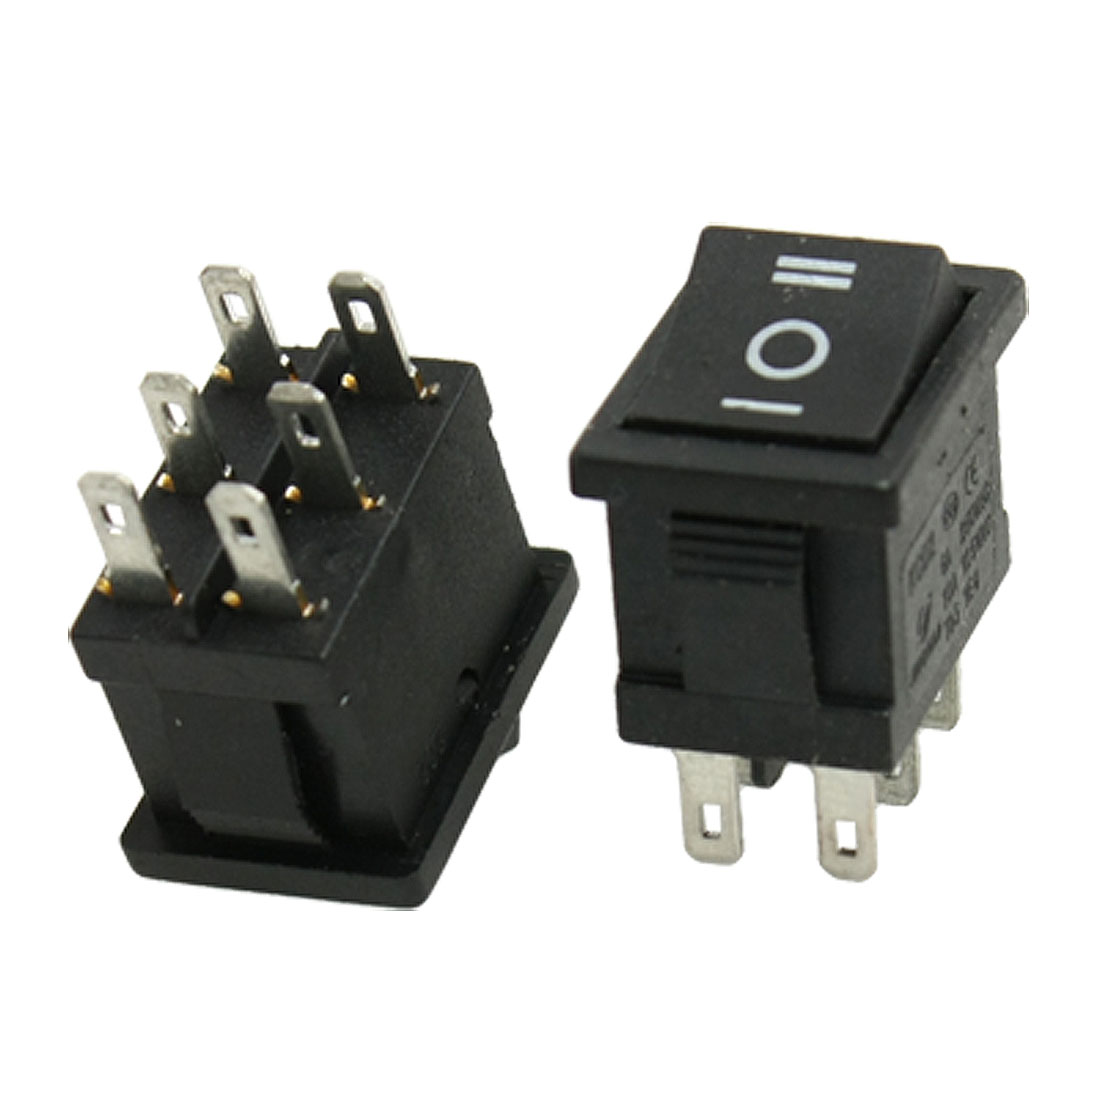 2 Pcs 6 Pin on-off-on DPDT Snap In Boat Rocker Switches 250V/6A 125V/10A AC